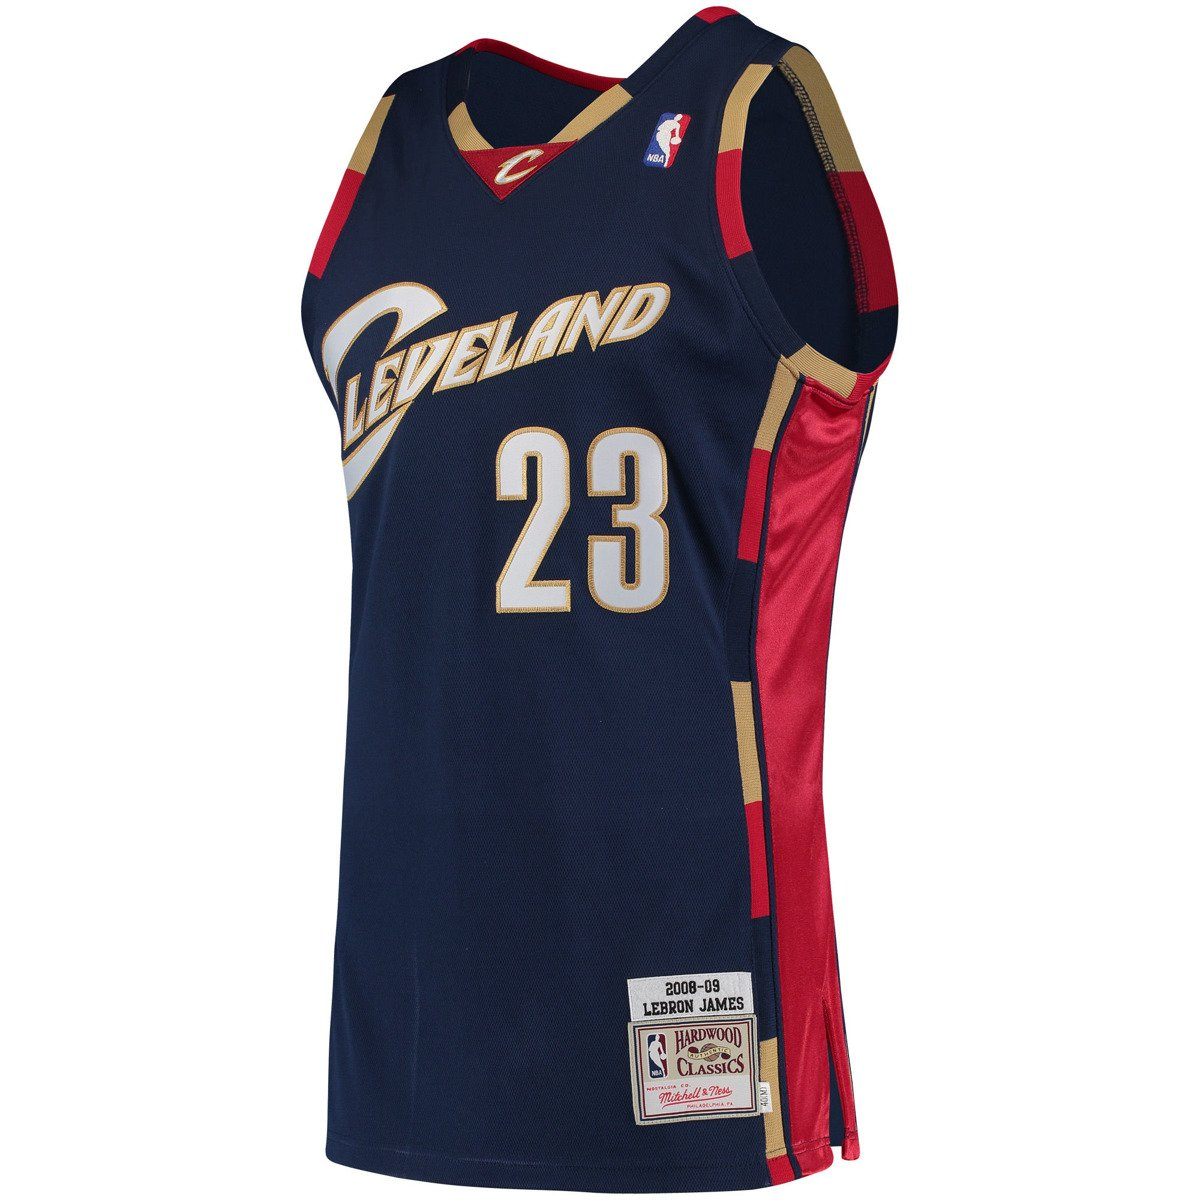 ... authentic mitchell ness lebron james 2008 09 nba hardwood classics  authentic cleveland cavaliers jersey 8547d 42e28 5d79d2c3b